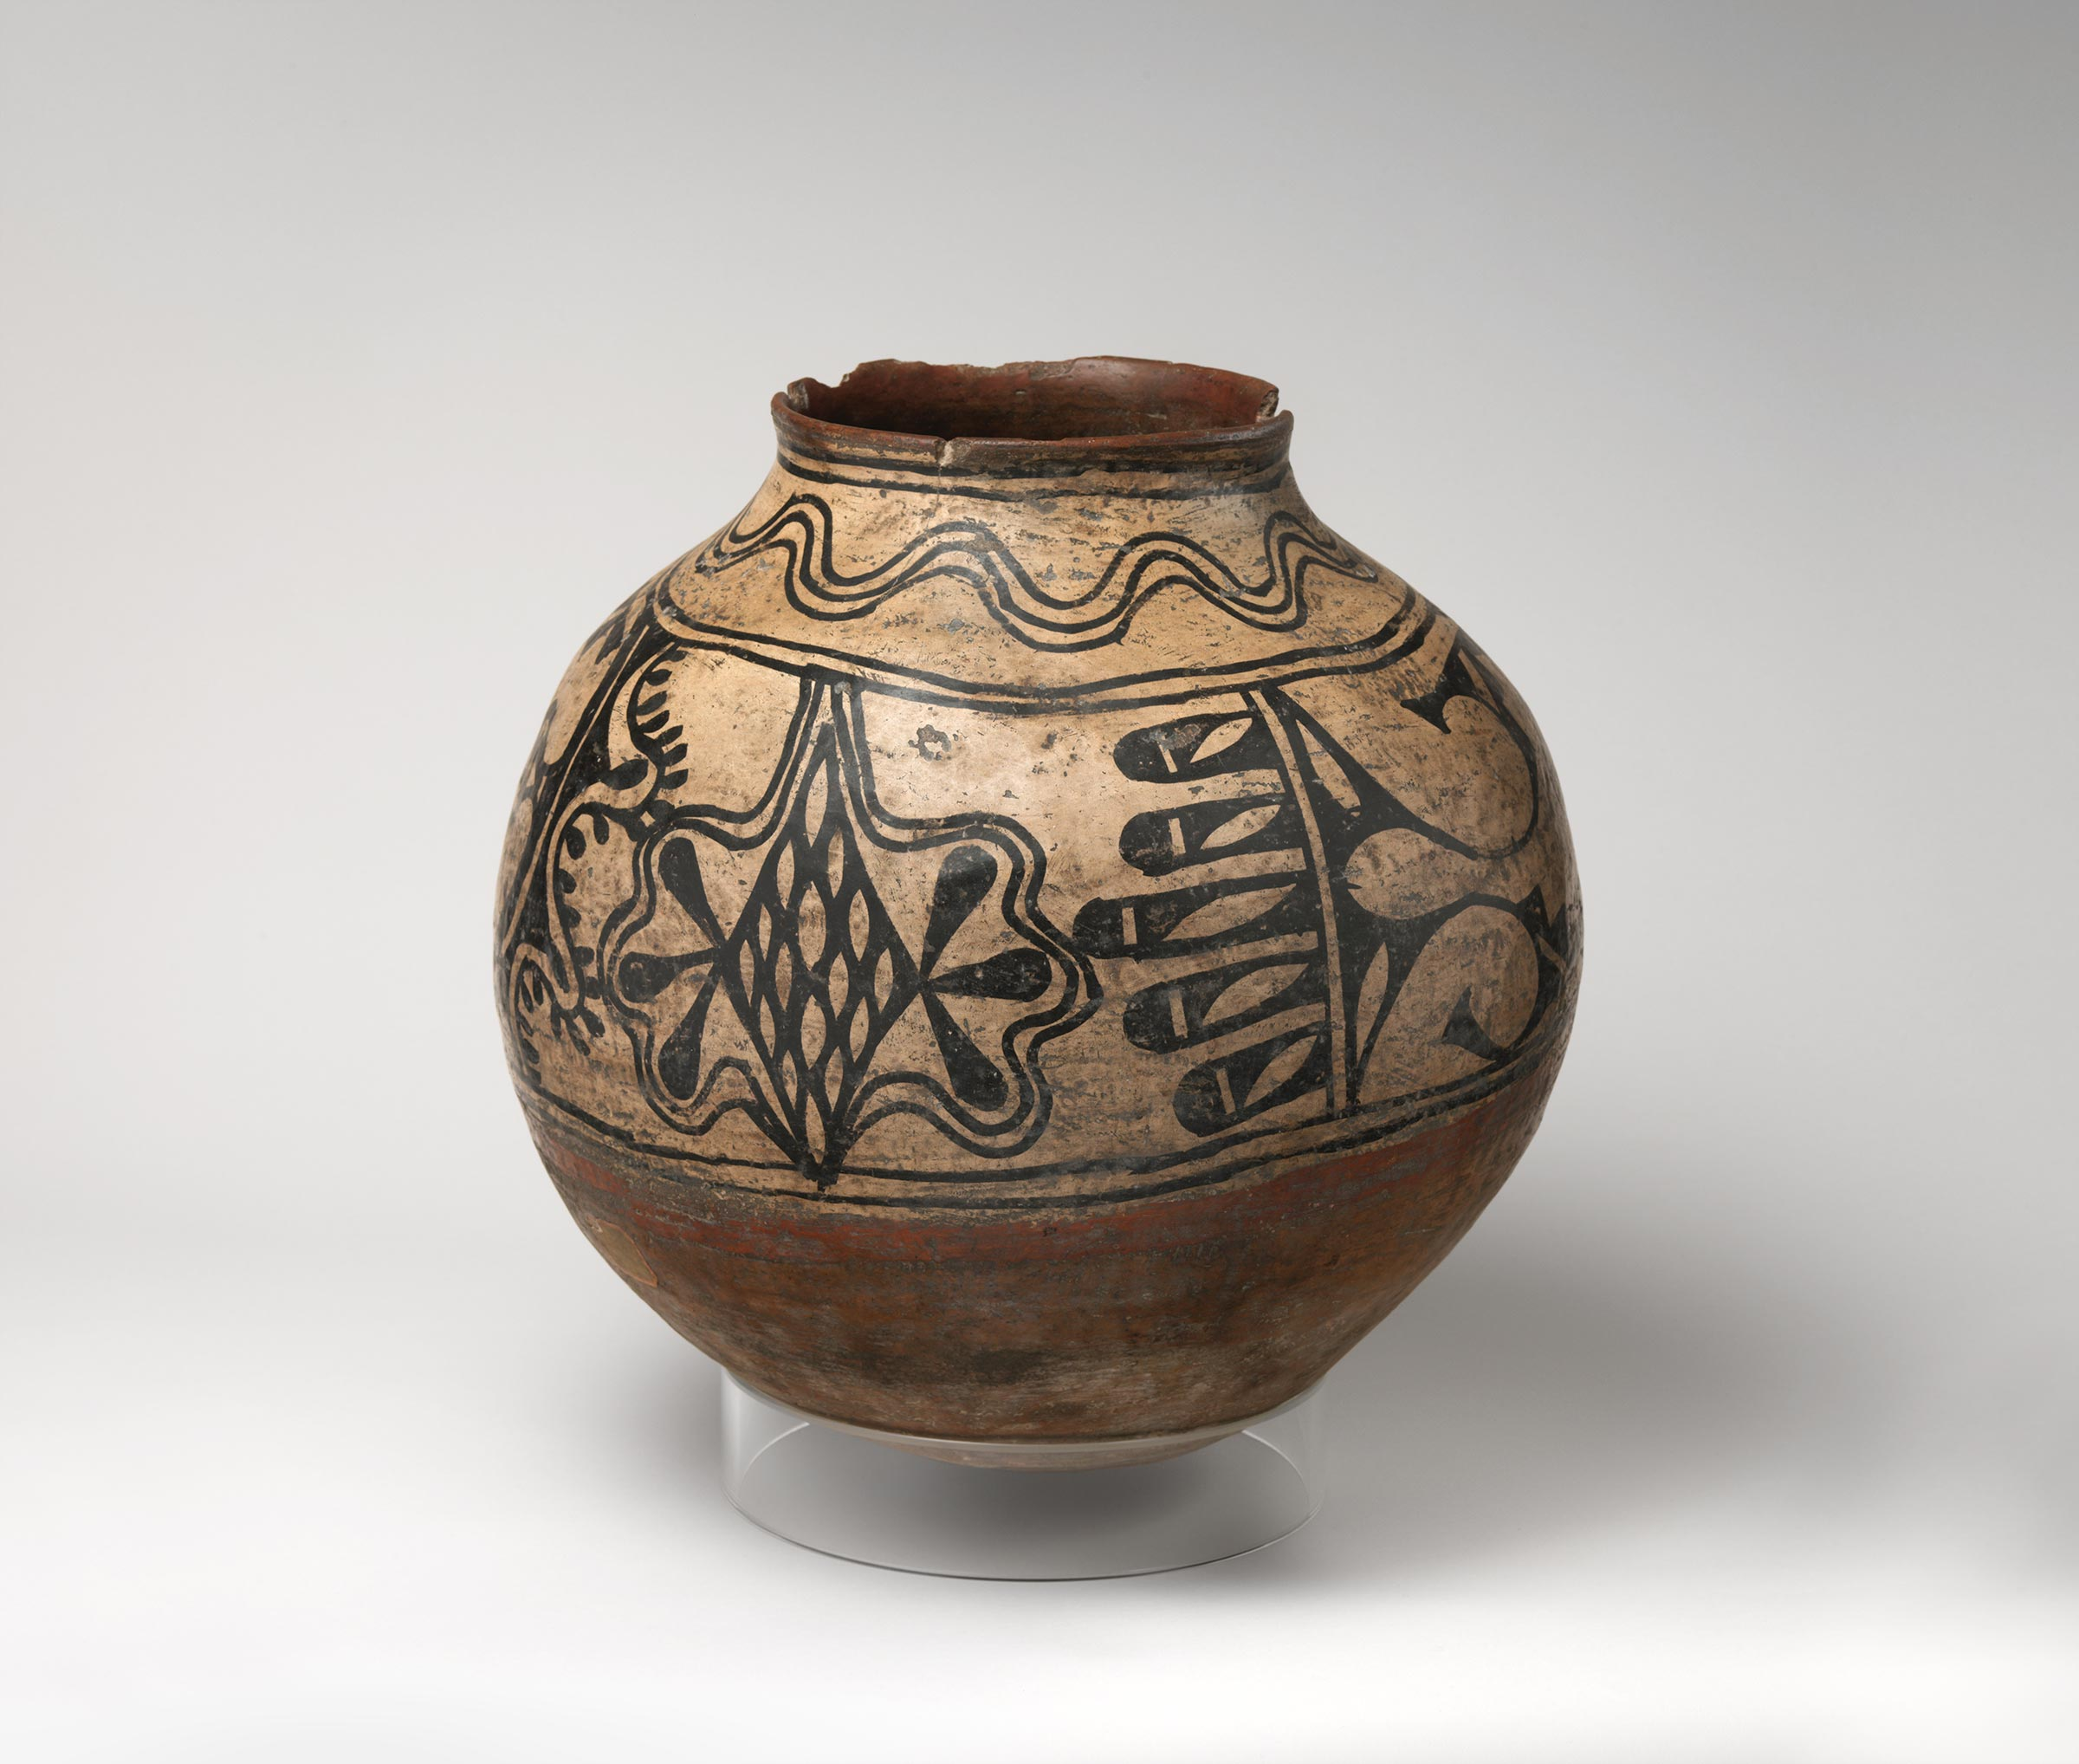 Cochiti polychrome storage jar featuring white slip with black and red painted decoration.